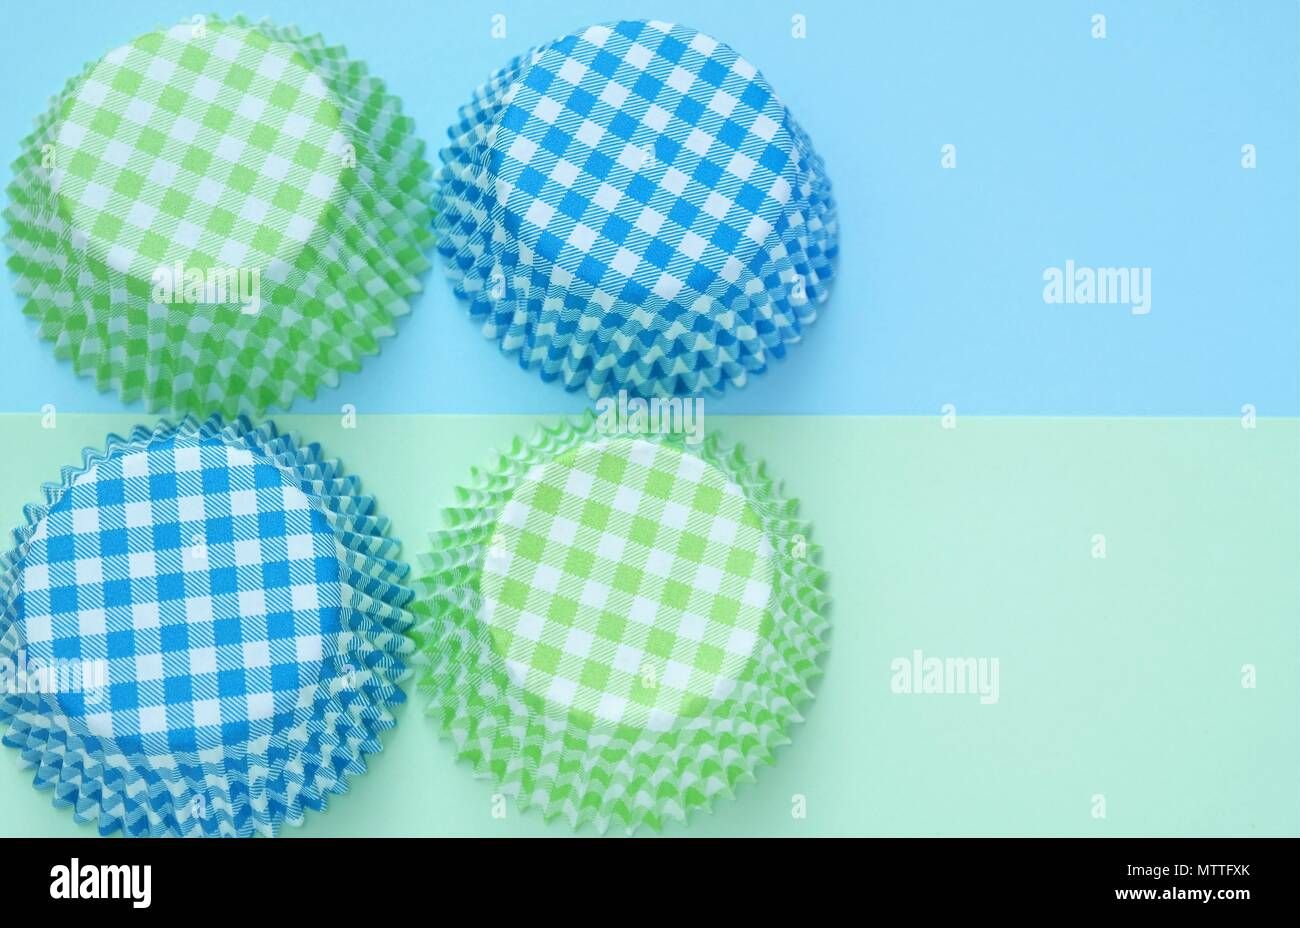 four cupcake molds of paper, arranged in a square. baking background in blue and green pastel colors. top view and text space. - Stock Photo